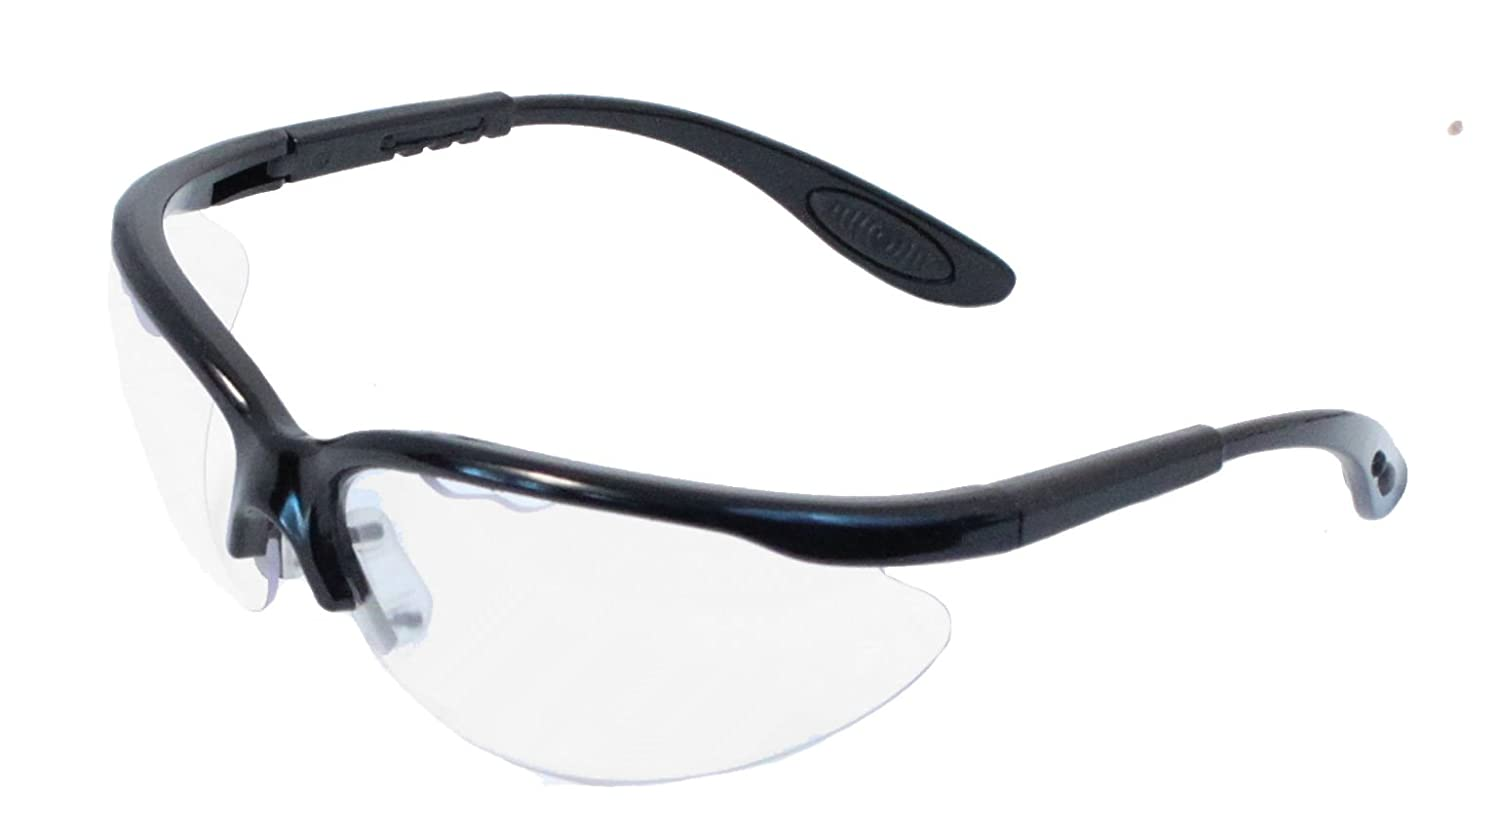 Python Xtreme View Protective Racquetball Eyeguard Eyewear Black White Available